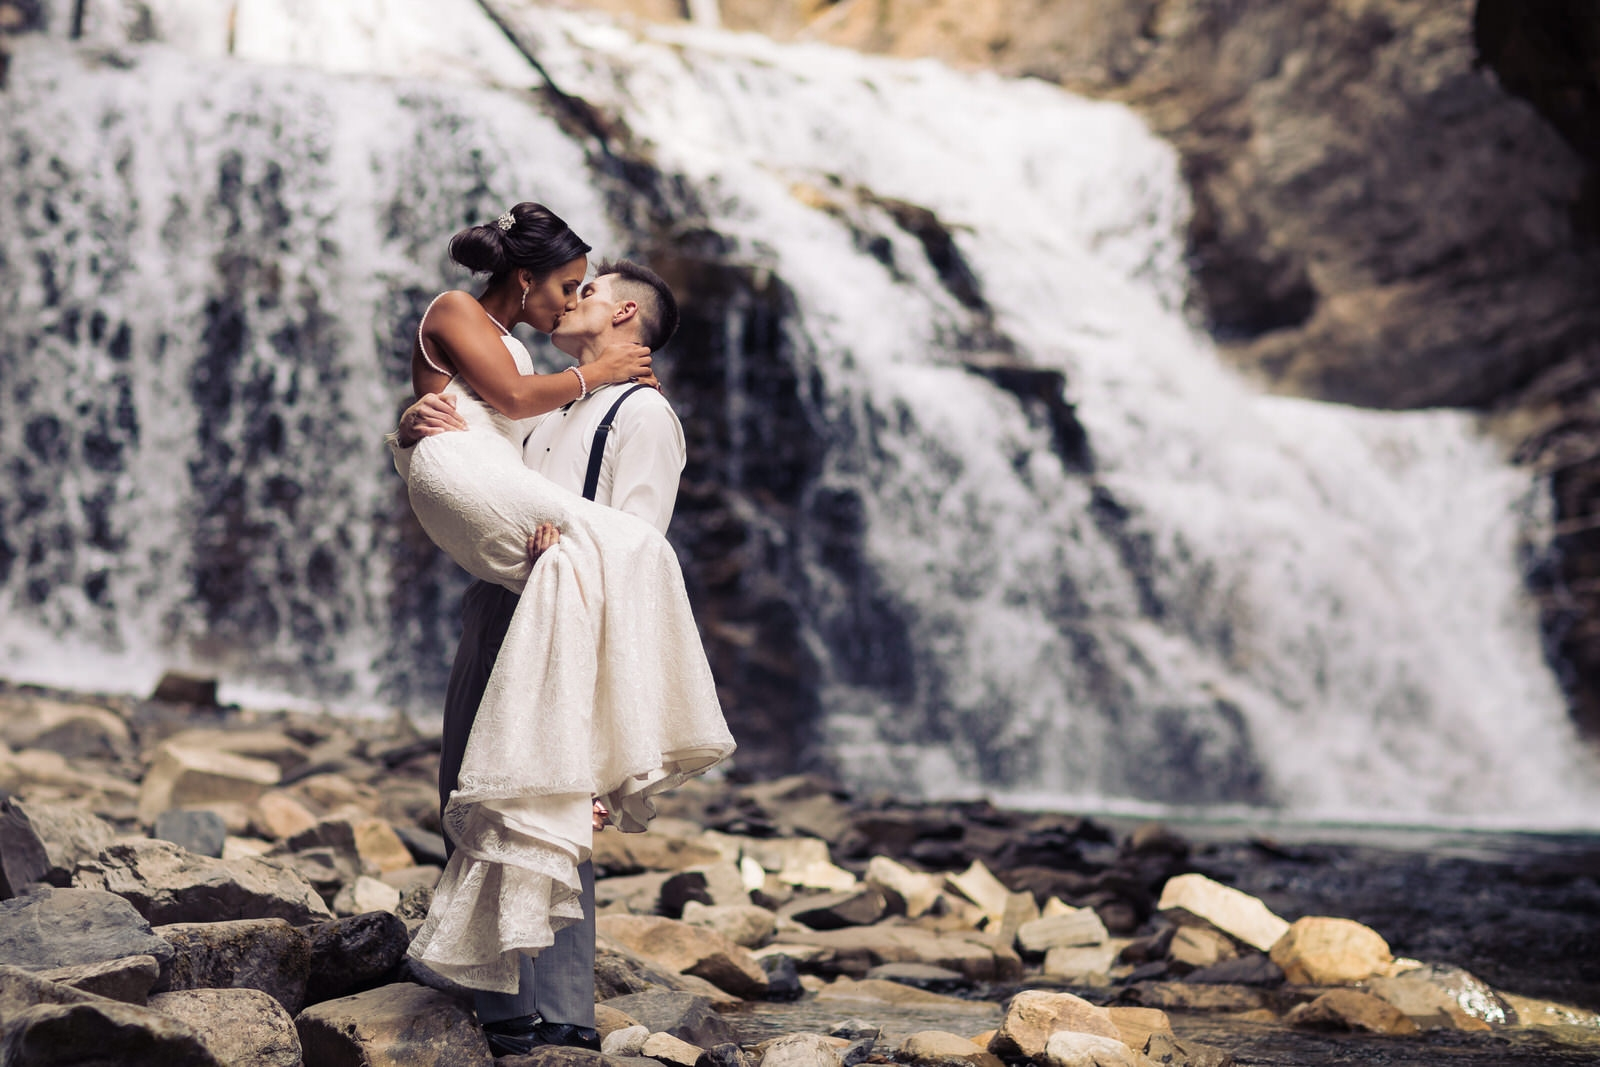 waterfall wedding photo